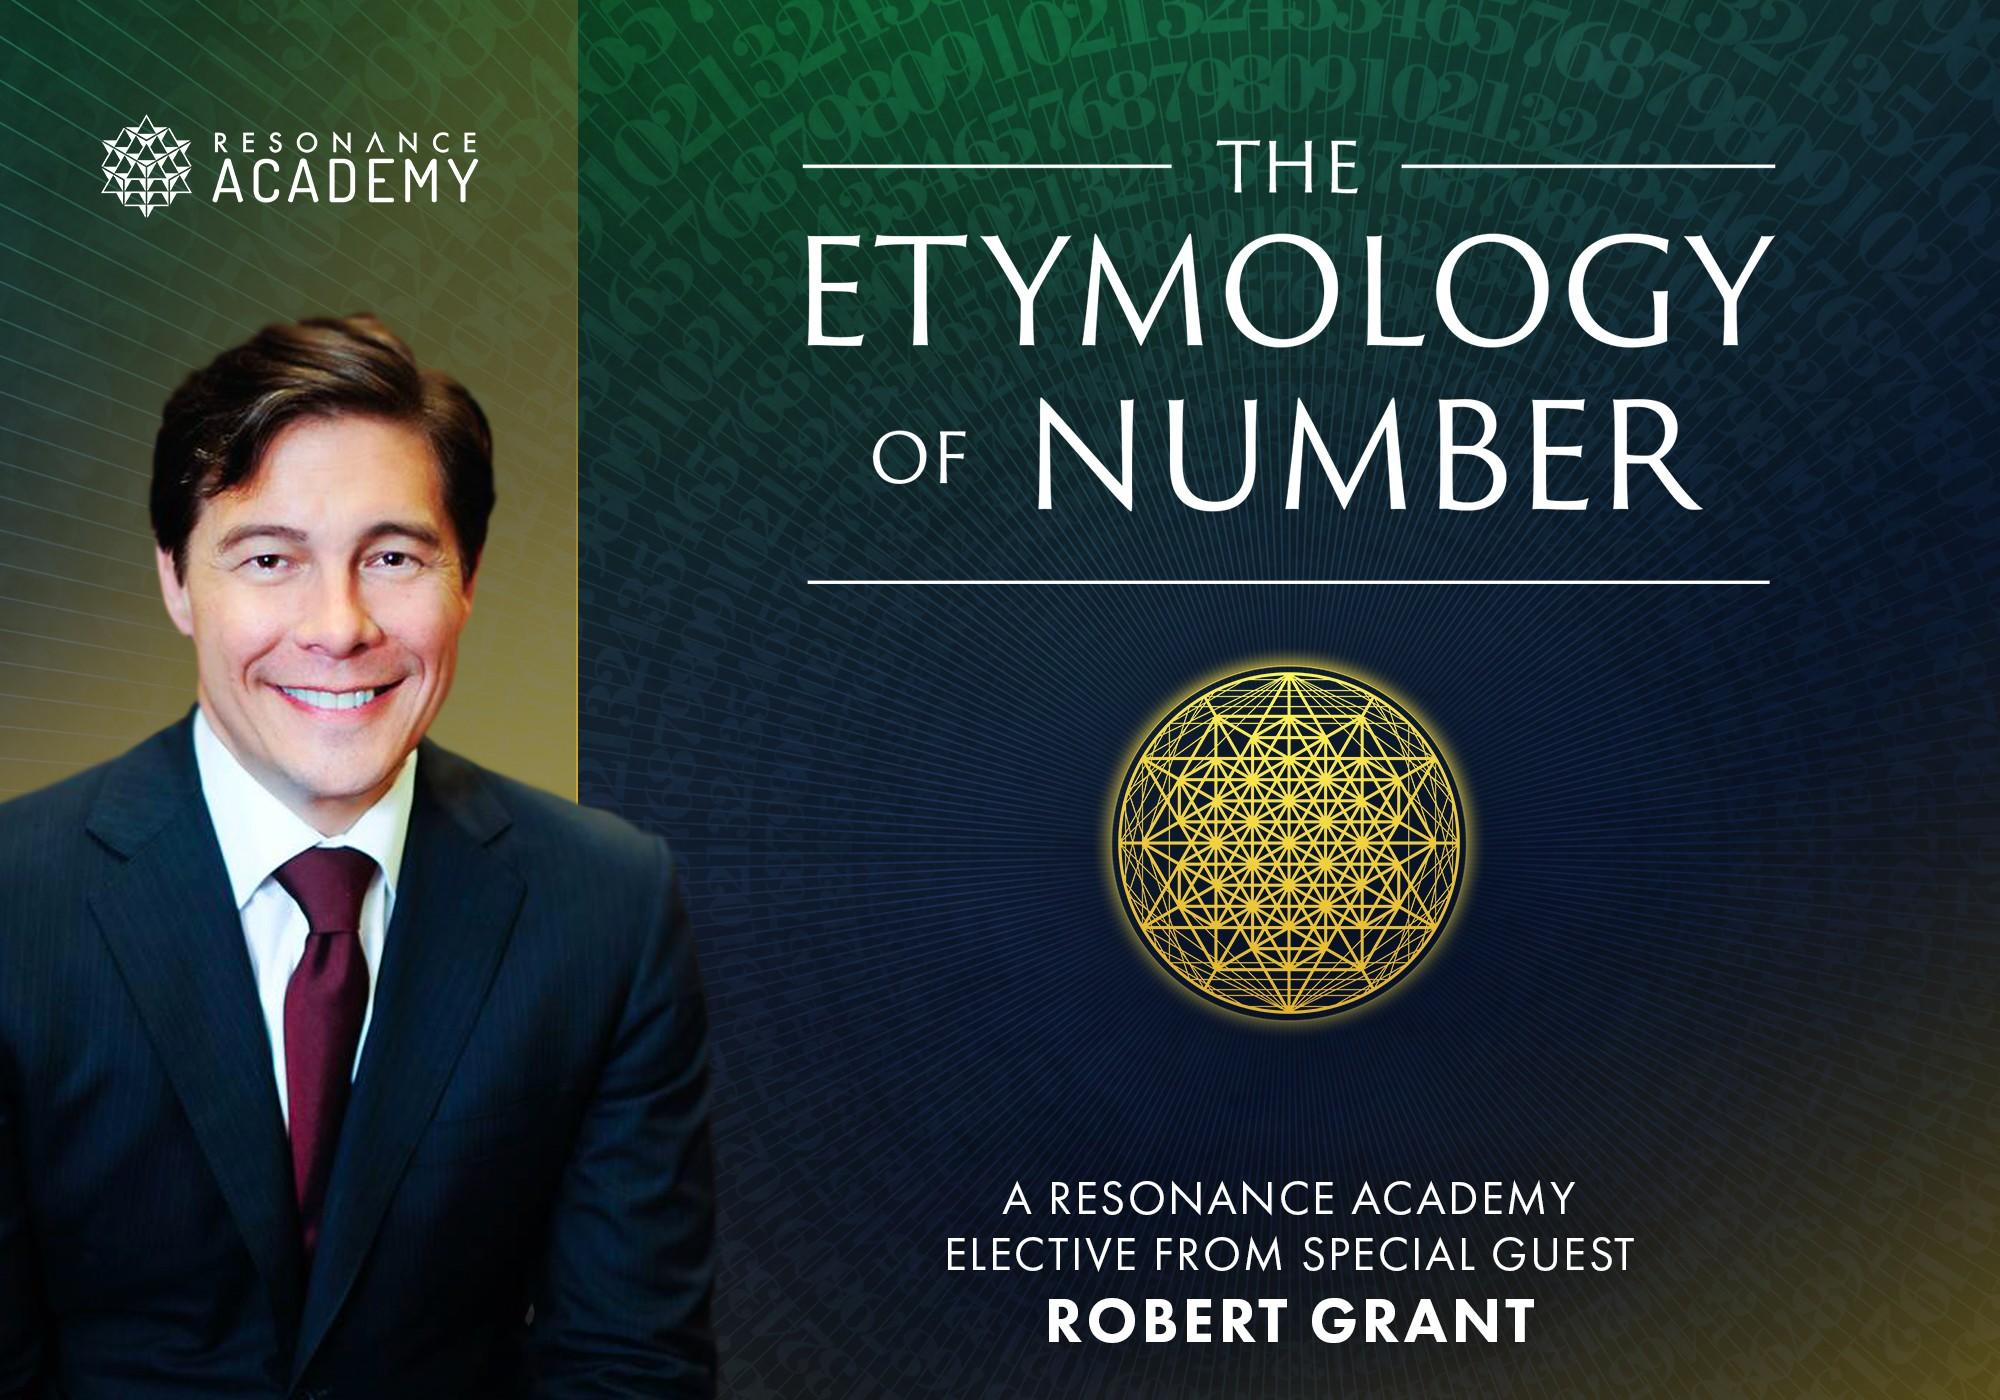 The Etymology of Number